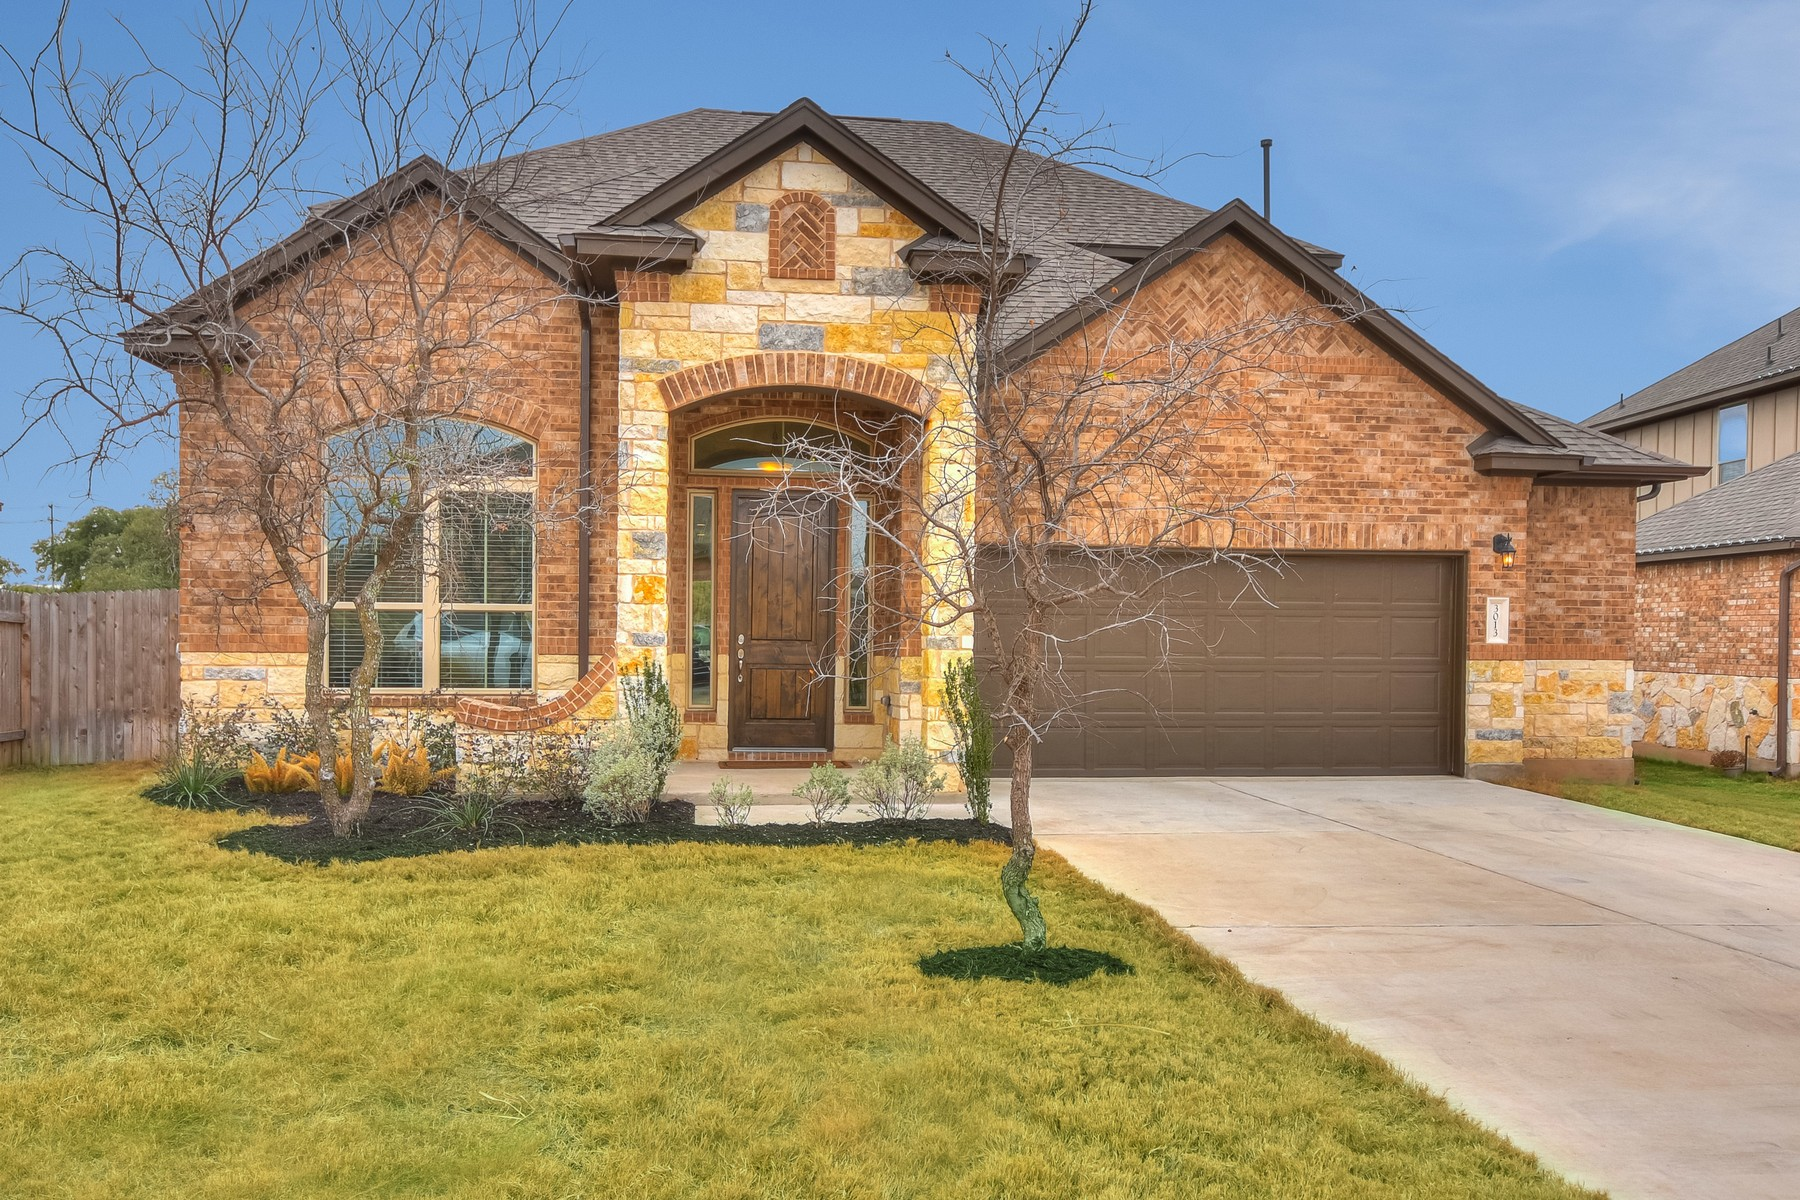 Single Family Home for Sale at Beautiful Scottsdale Crossing Home 3013 Tempe Dr Leander, Texas 78641 United States